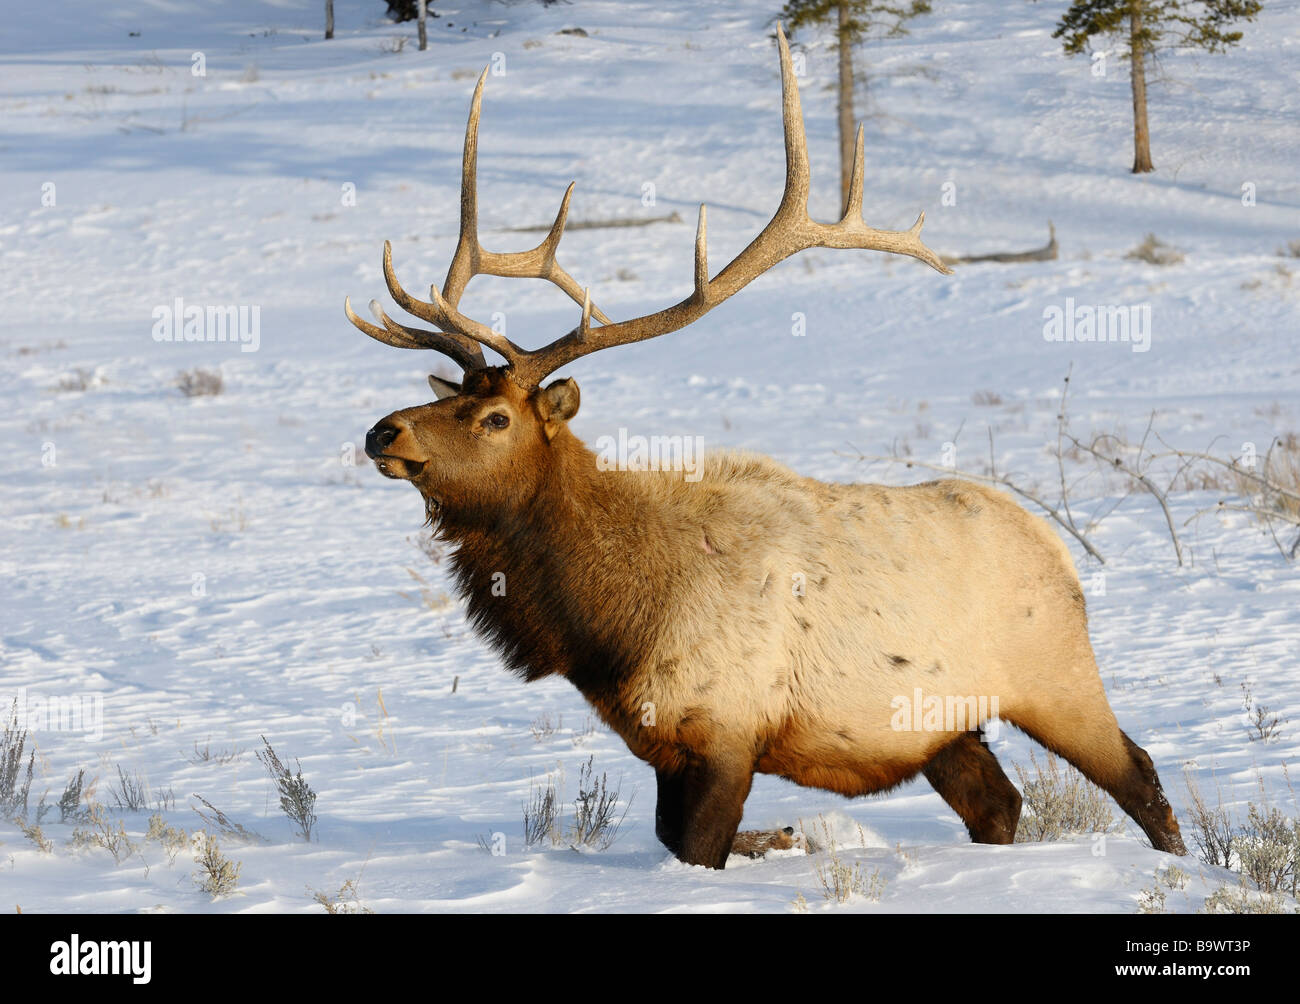 Mature bull elk with antlers walking in deep snow at Blacktail Deer Plateau Yellowstone National Park Wyoming USA - Stock Image